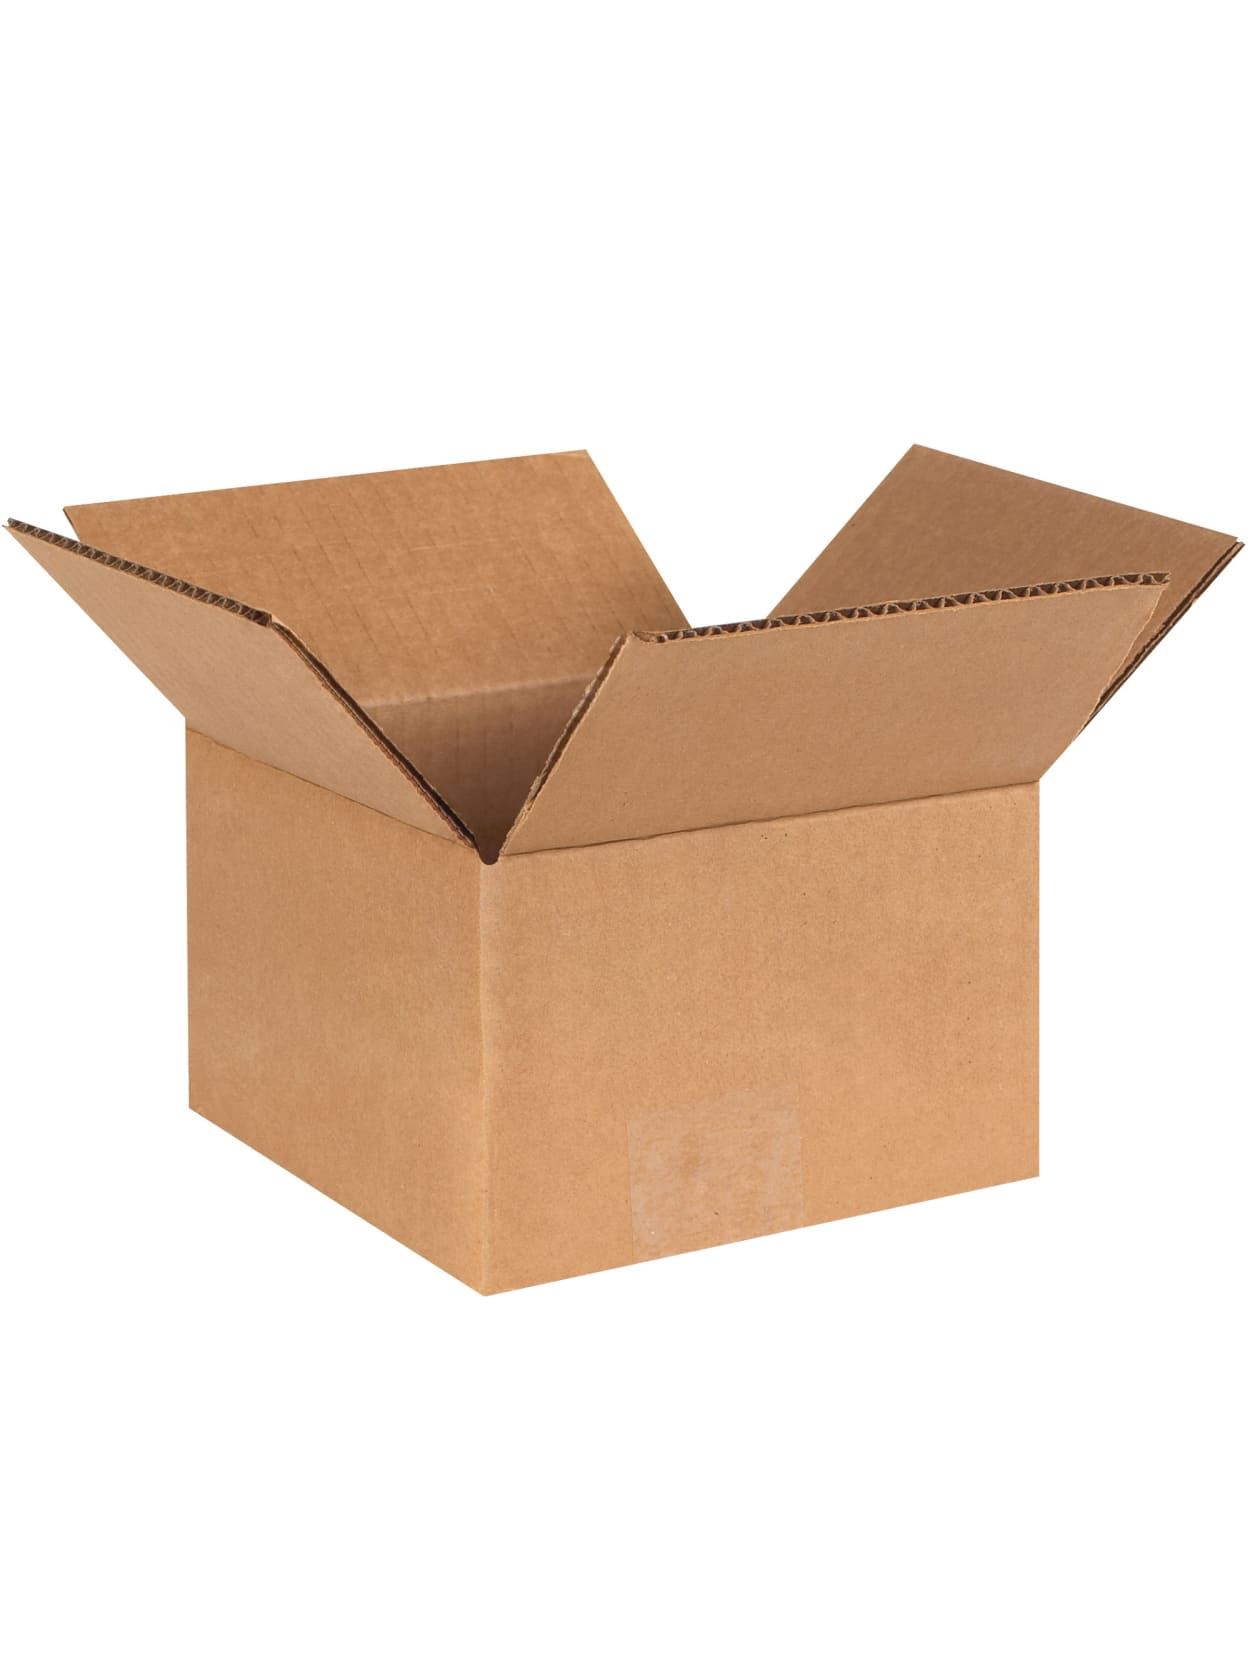 25-10 x 6 x 5 Corrugated Shipping Boxes Storage Cartons Moving Packing Box